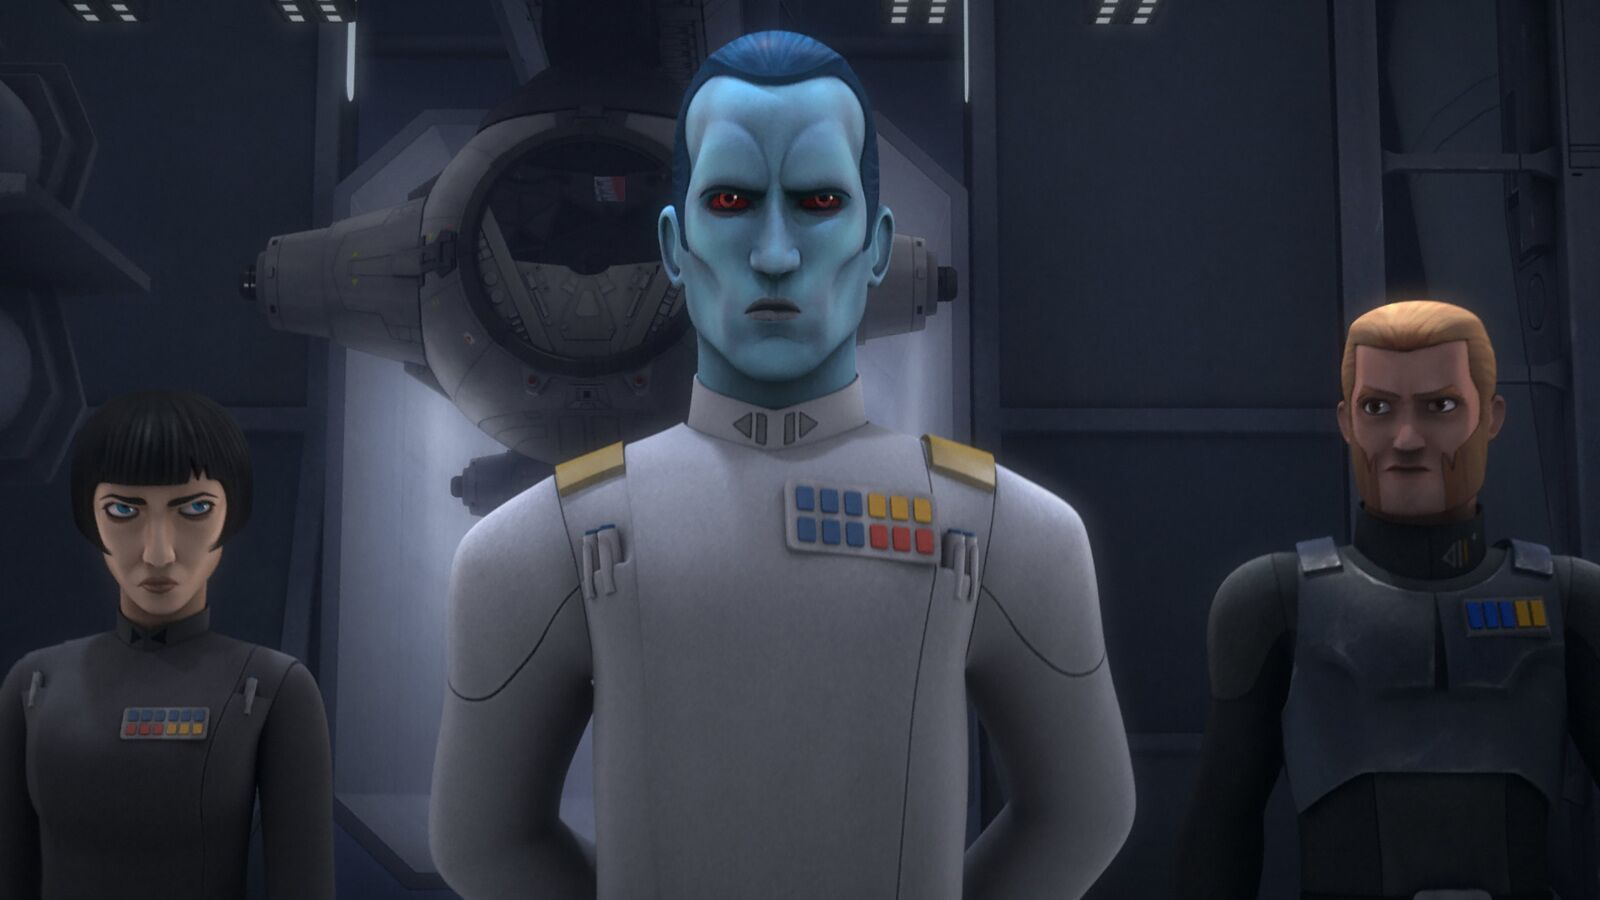 Star Wars: Thrawn's story isn't finished yet